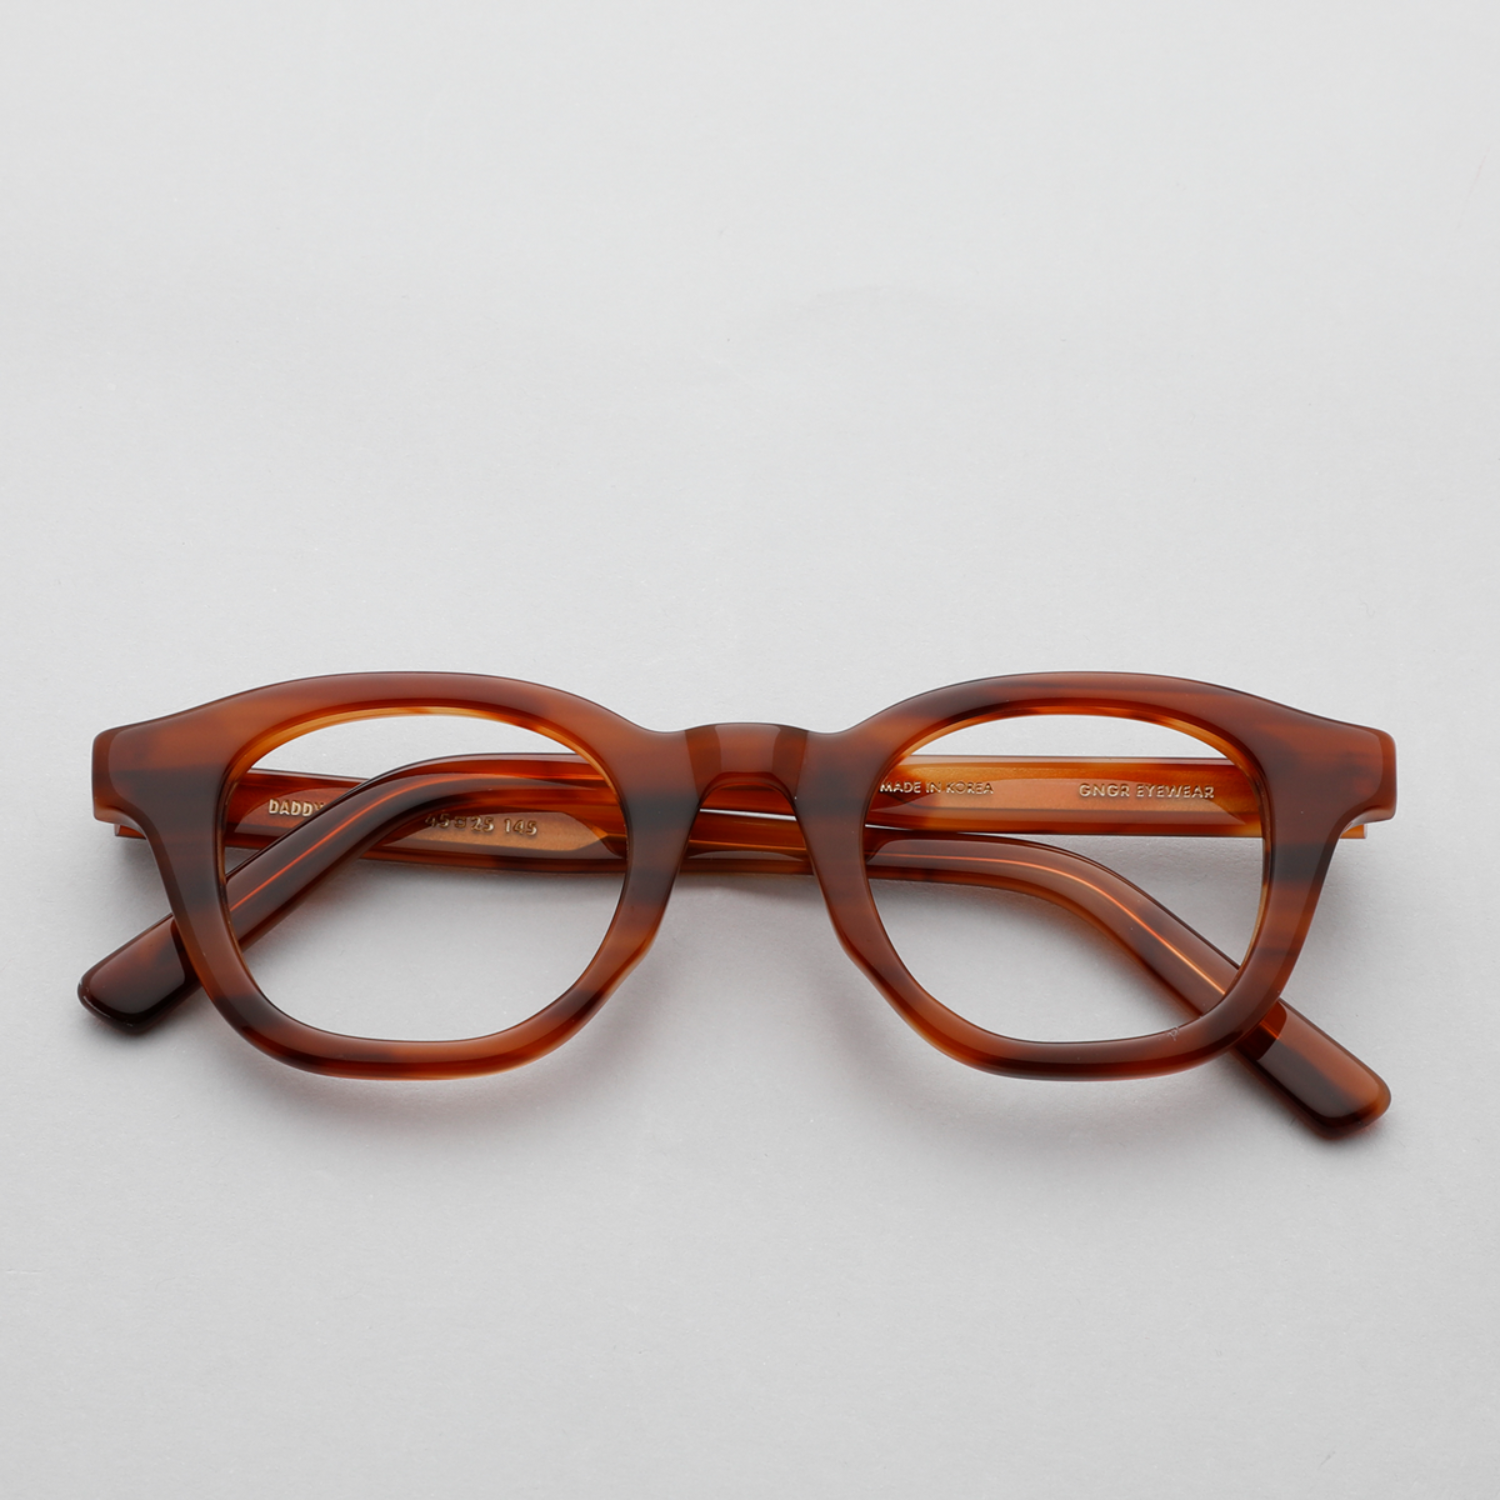 진저아이웨어 안경 대디 Daddy 74% Tiger brown GINGER EYEWEAR